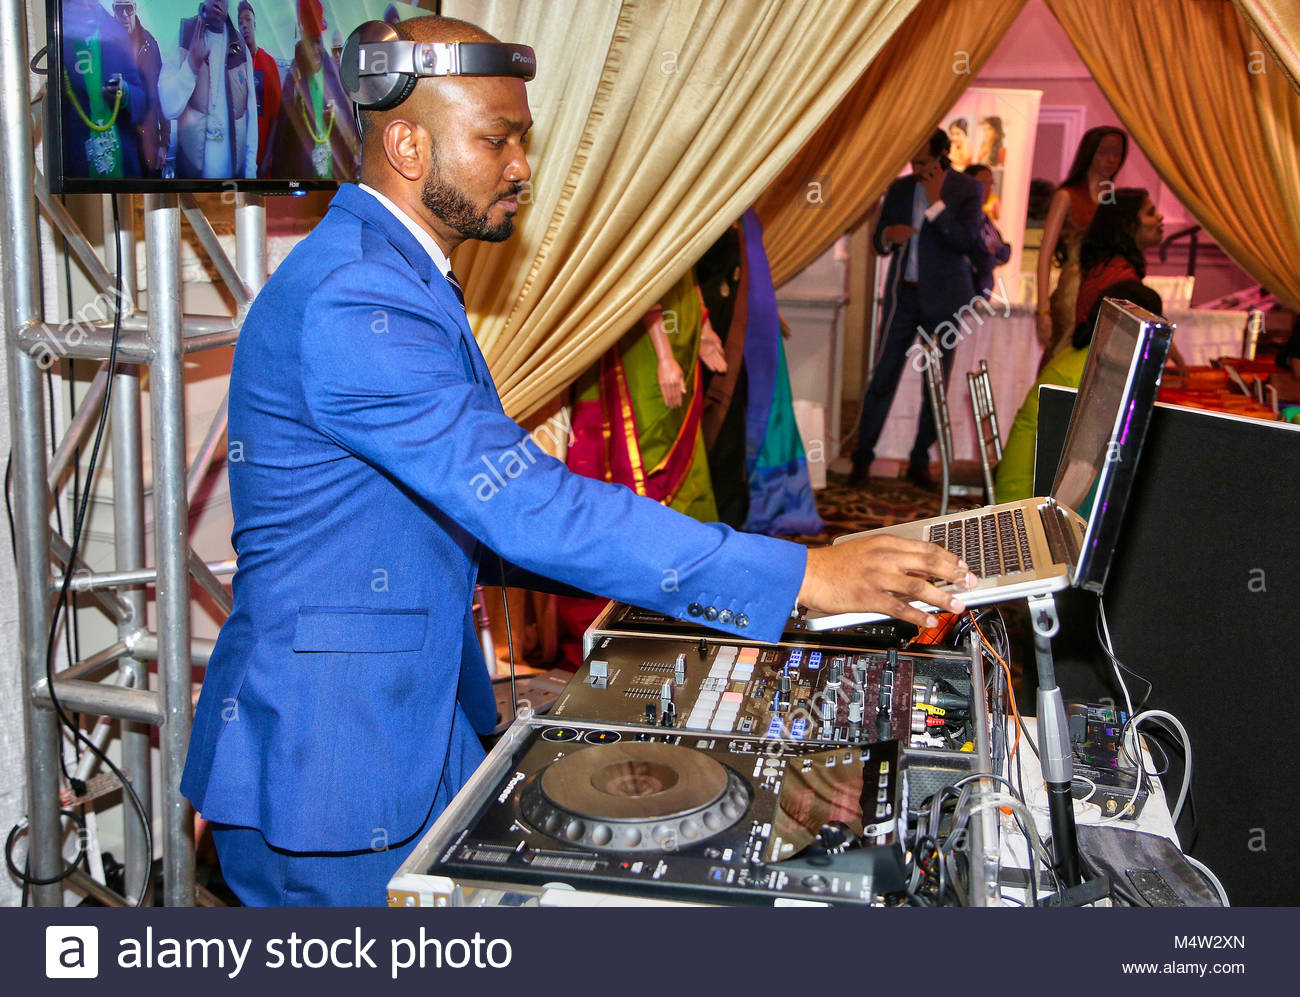 Disc jockey (DJ) entertains the crowd during an event in Scarborough, Ontario, Canada. - Stock Image